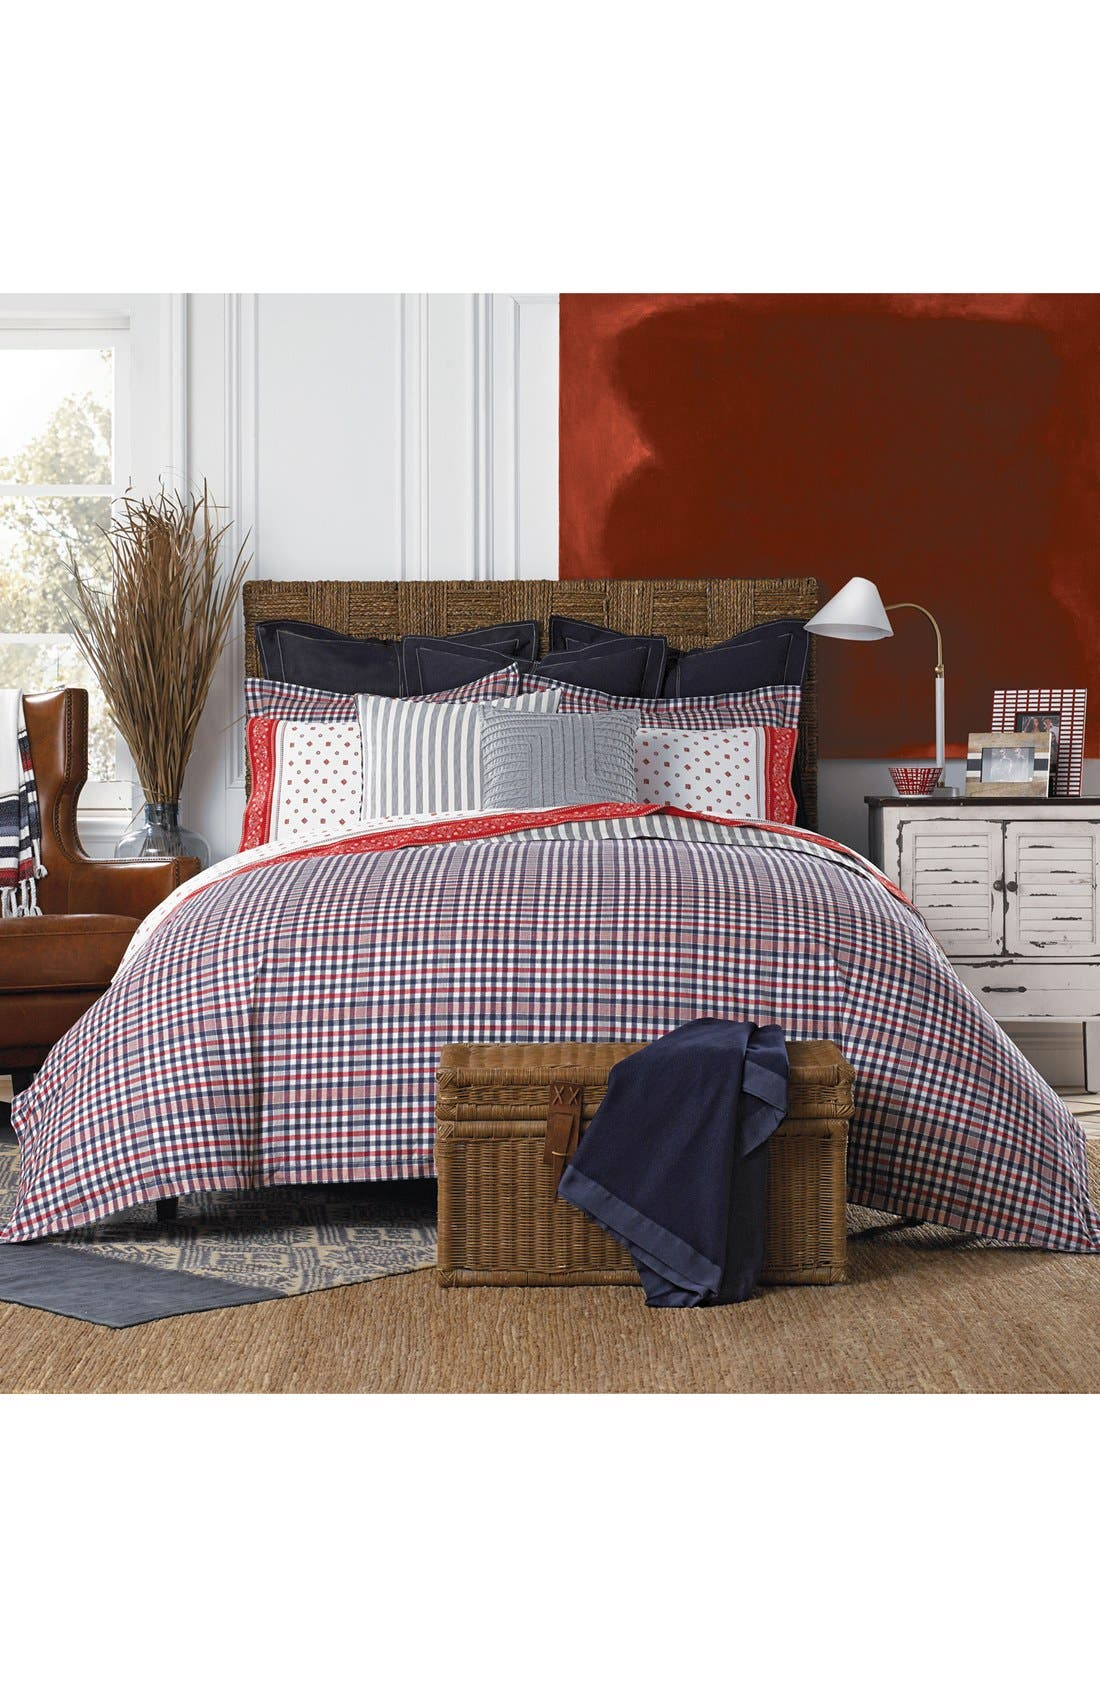 Main Image - Tommy Hilfiger Plaid Comforter & Sham Set